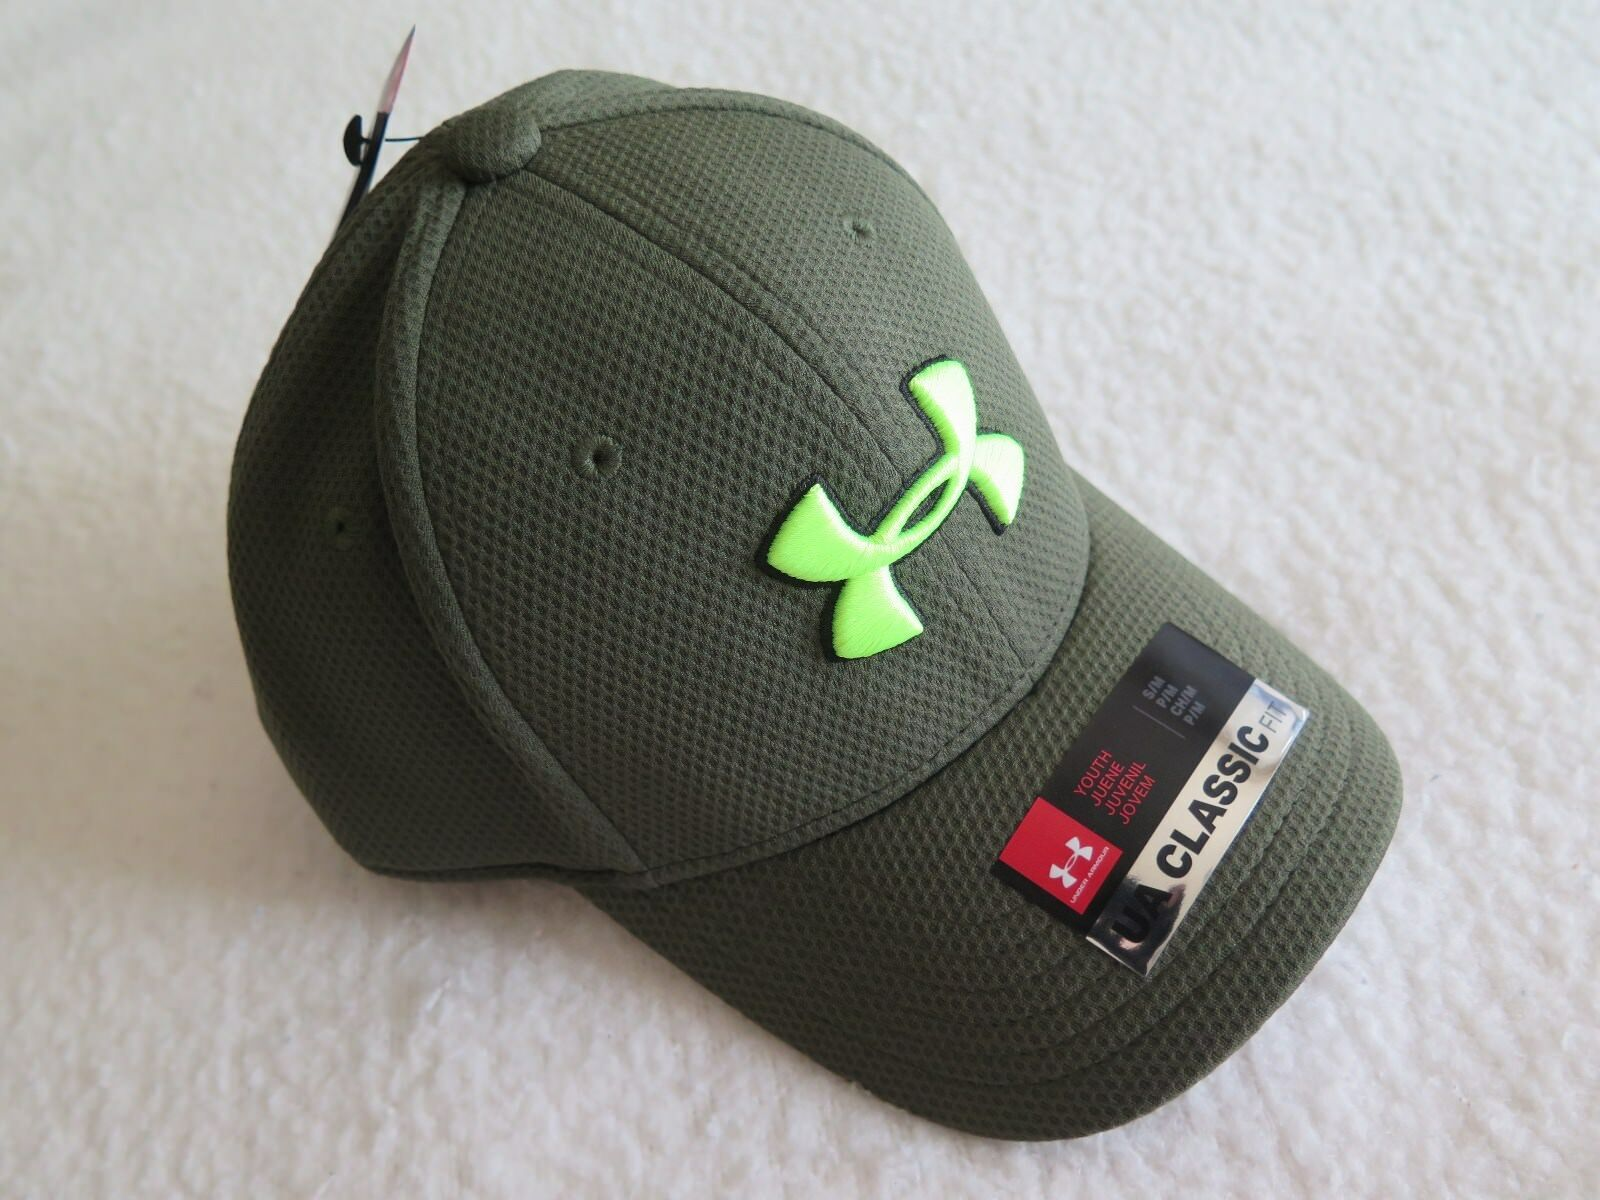 cefba52d071 Under Armour Boys  Blitzing Stretch Fit Hat II S m Style 1254660 330 for  sale online